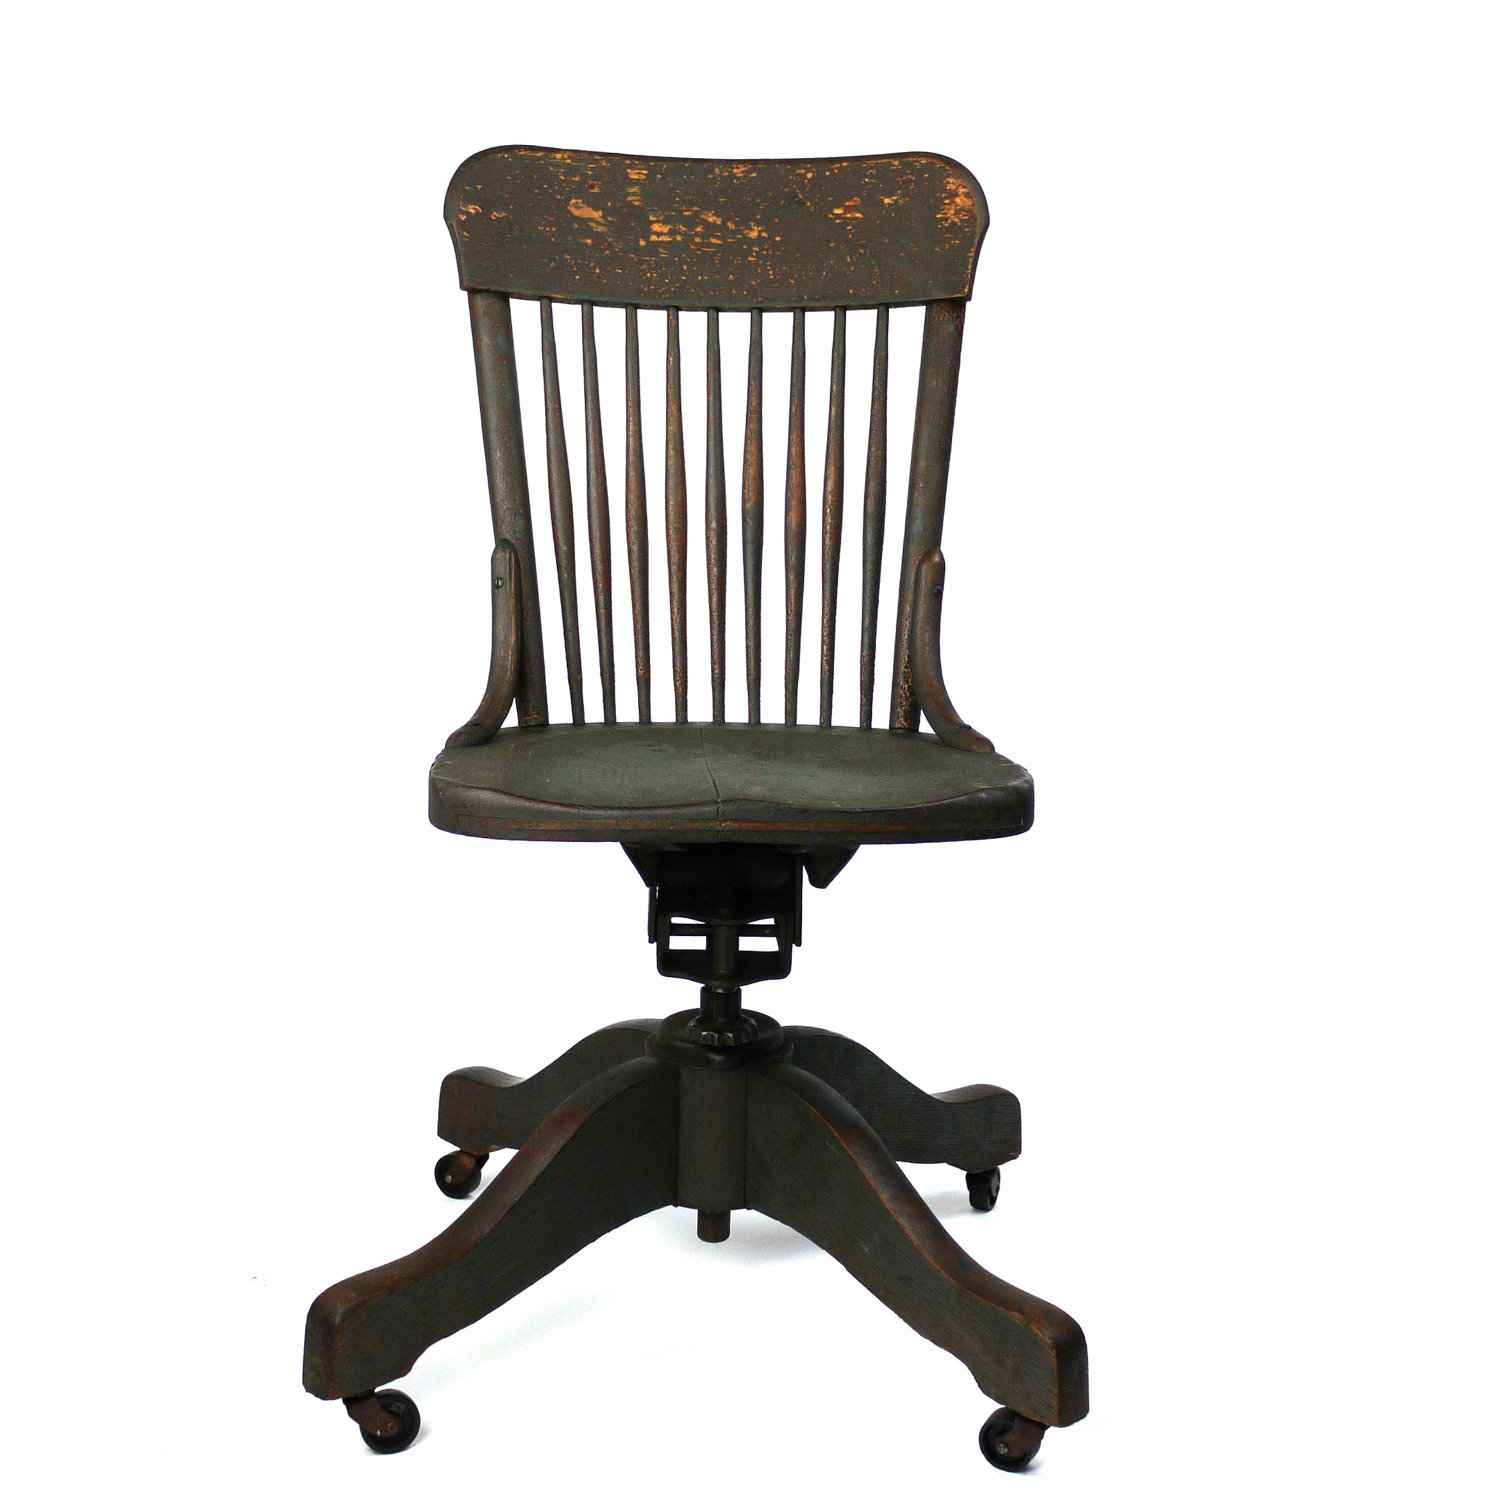 wood antique office chair for vintage look